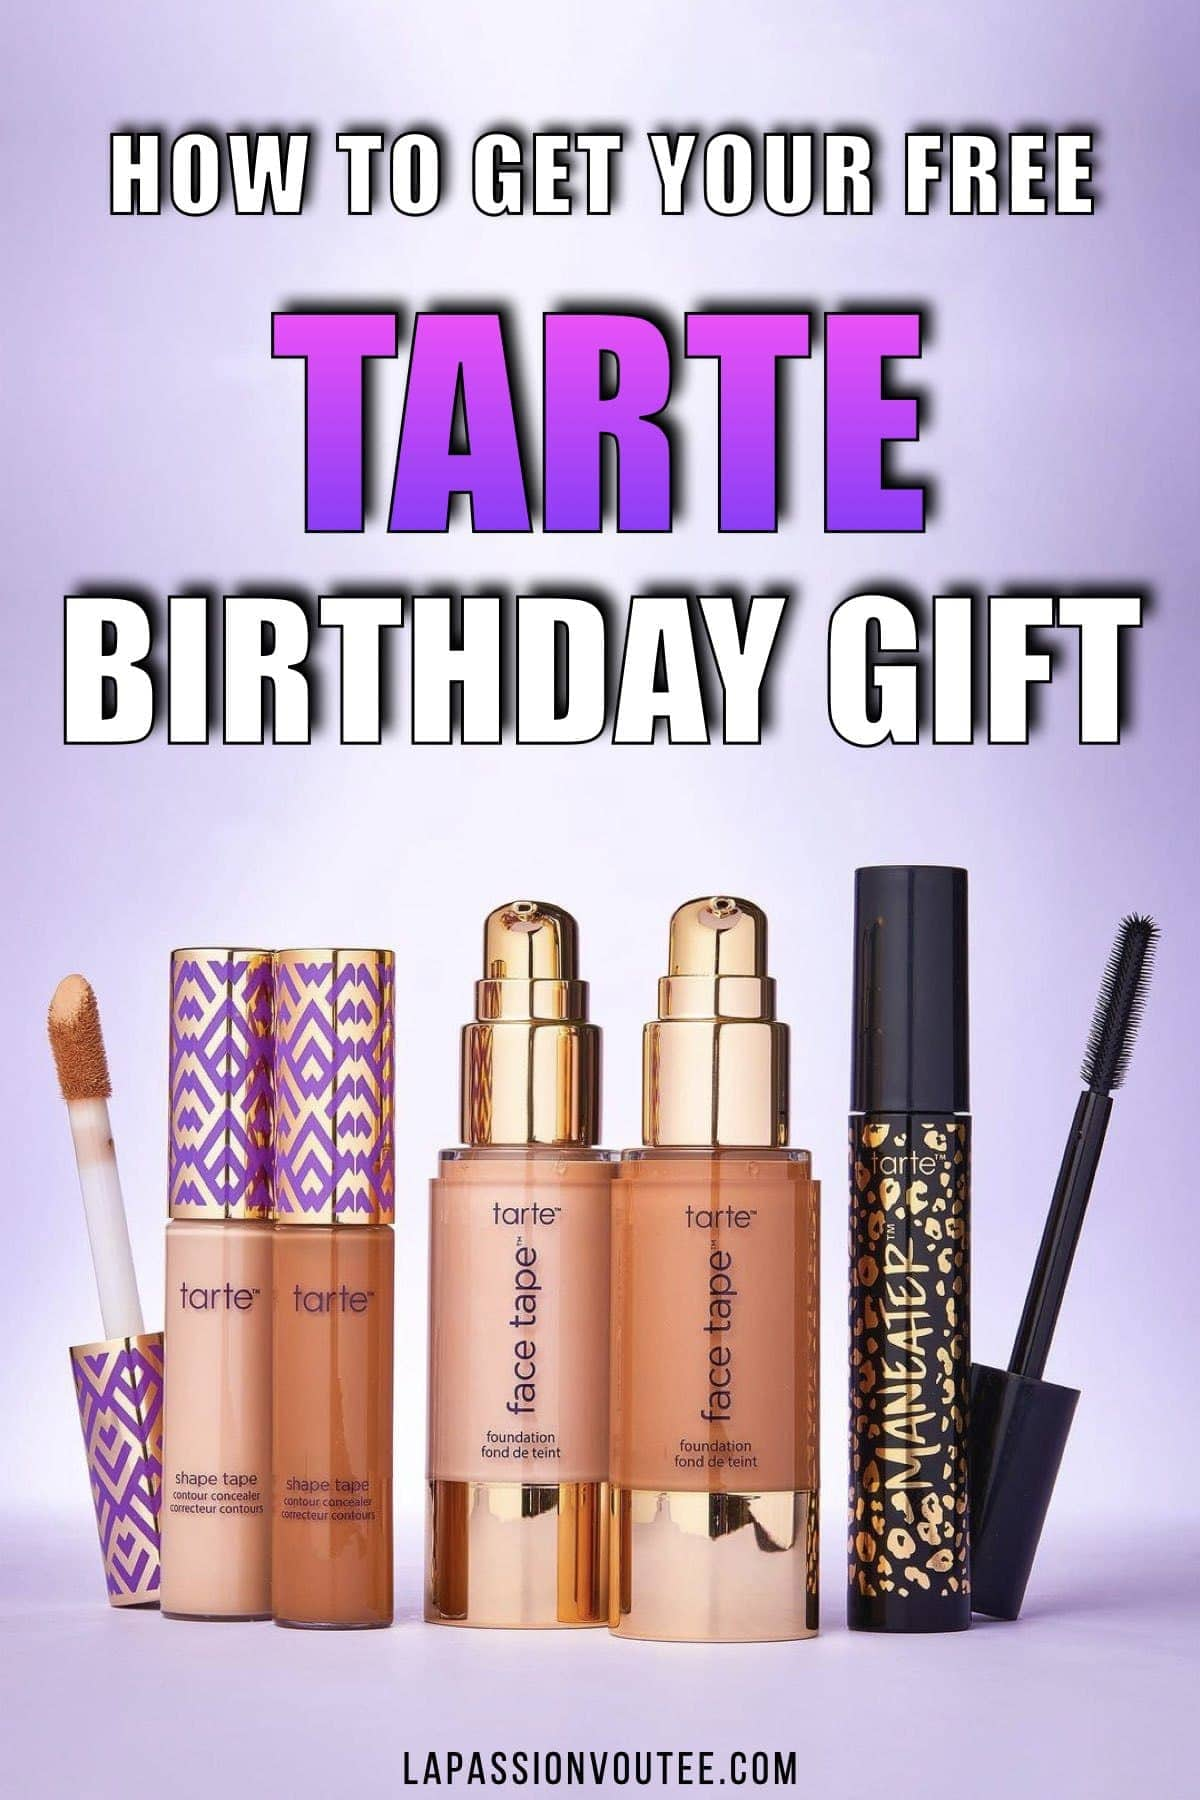 How to get your FREE Tarte Birthday Gift